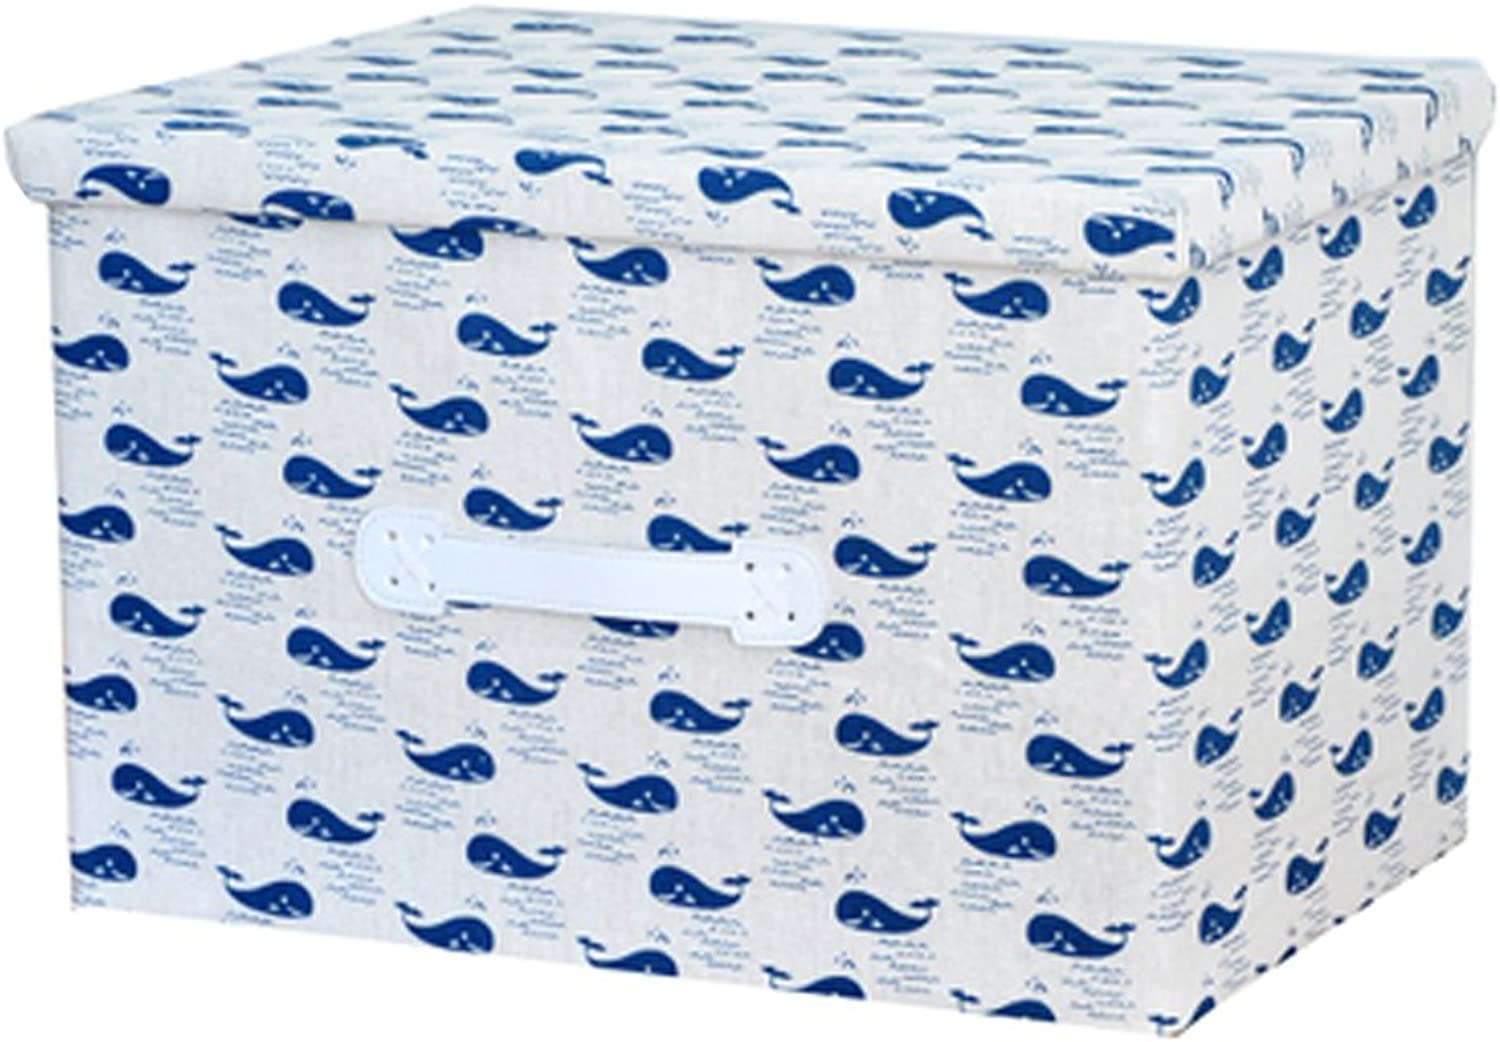 Convenient Storage Organizer Box Basket Container for Home Foldable, Whale Tribe